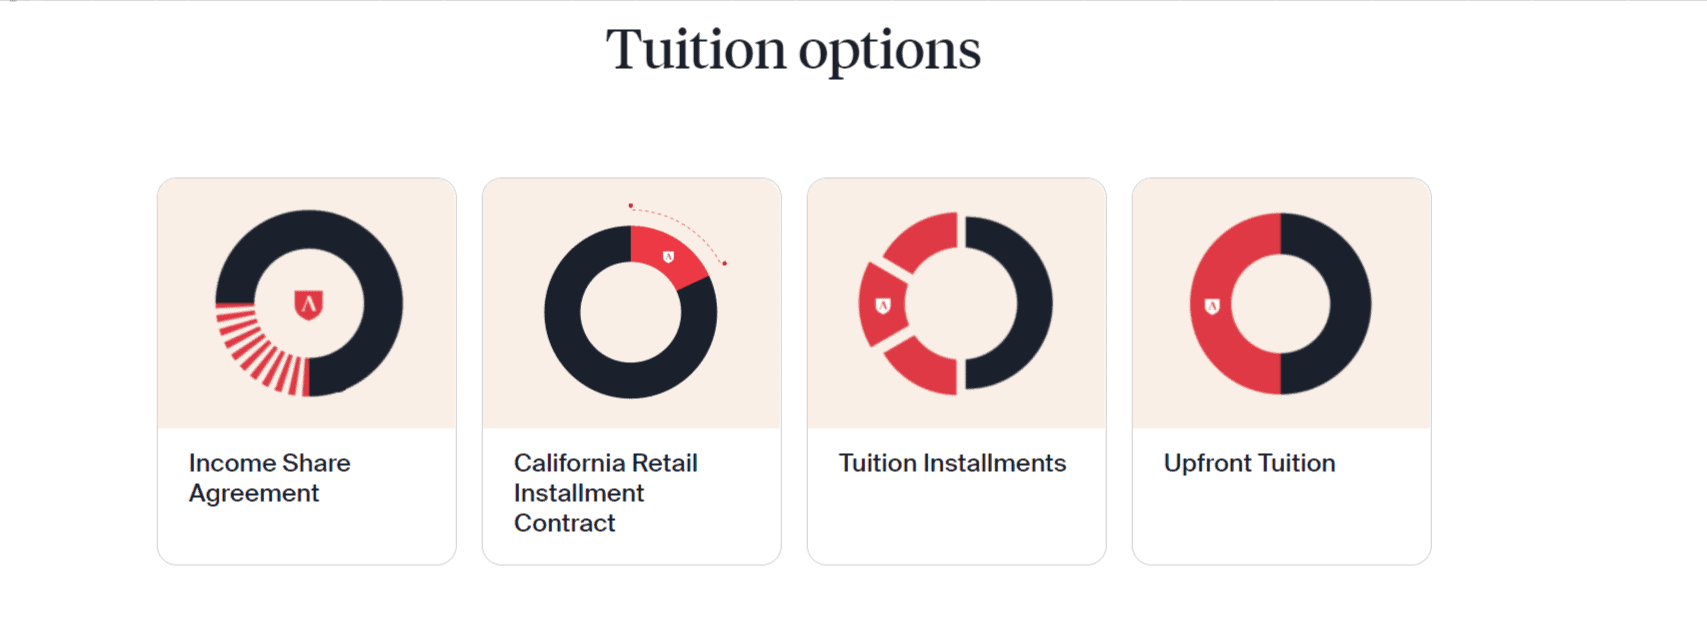 Tuition Options-Lambda school review